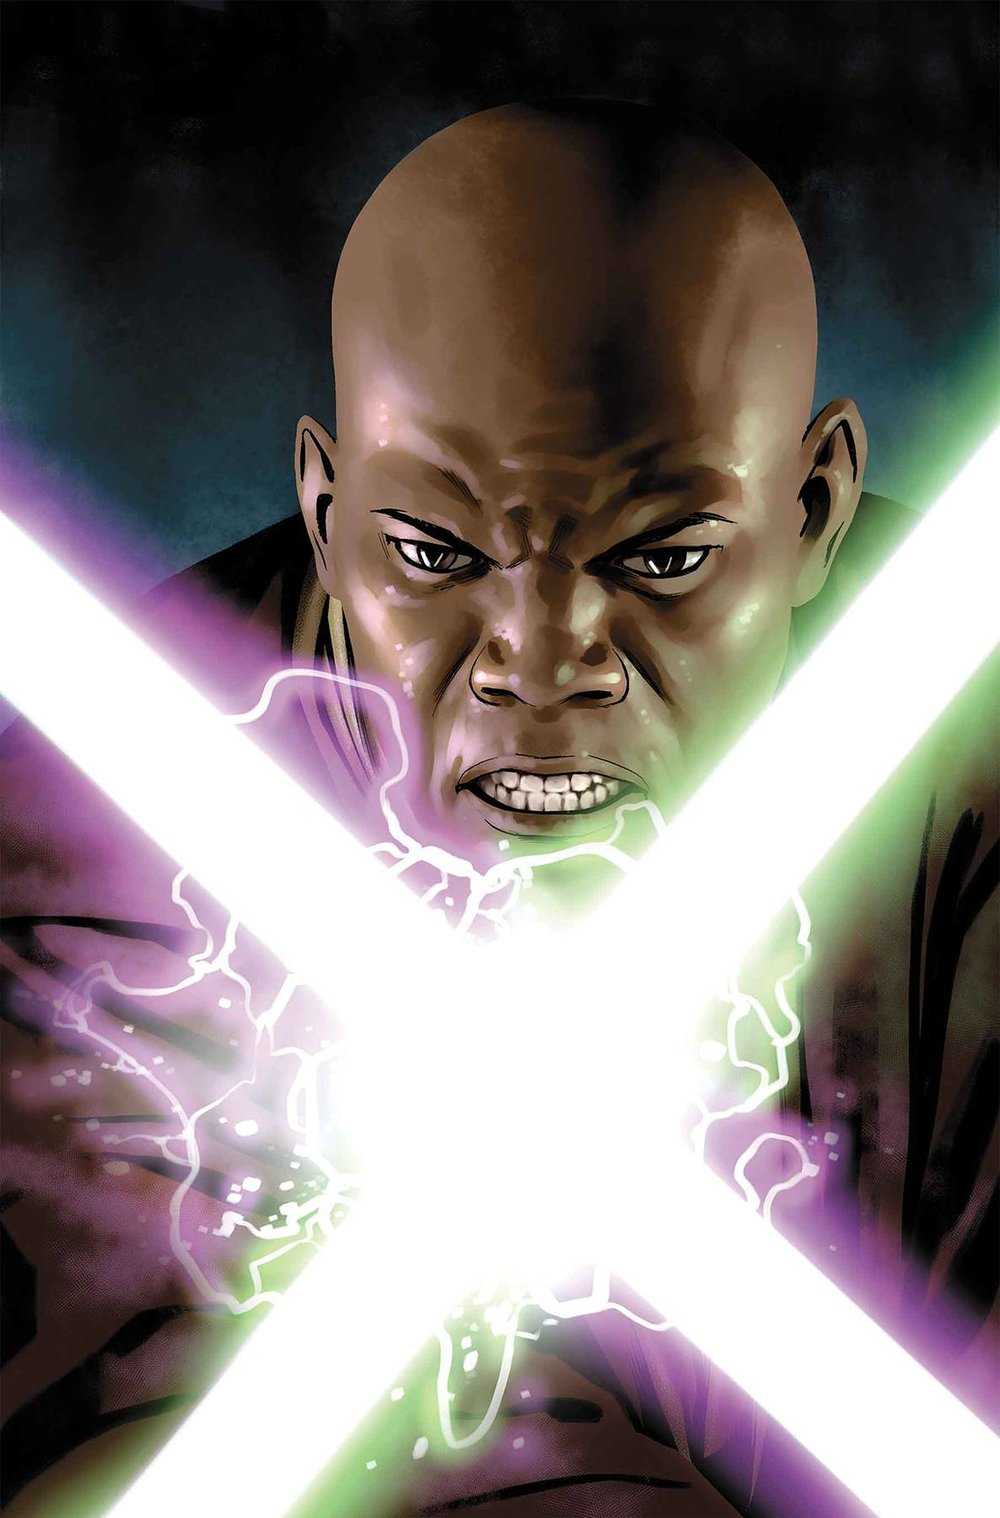 STAR WARS JEDI REPUBLIC MACE WINDU 4 of 5.jpg